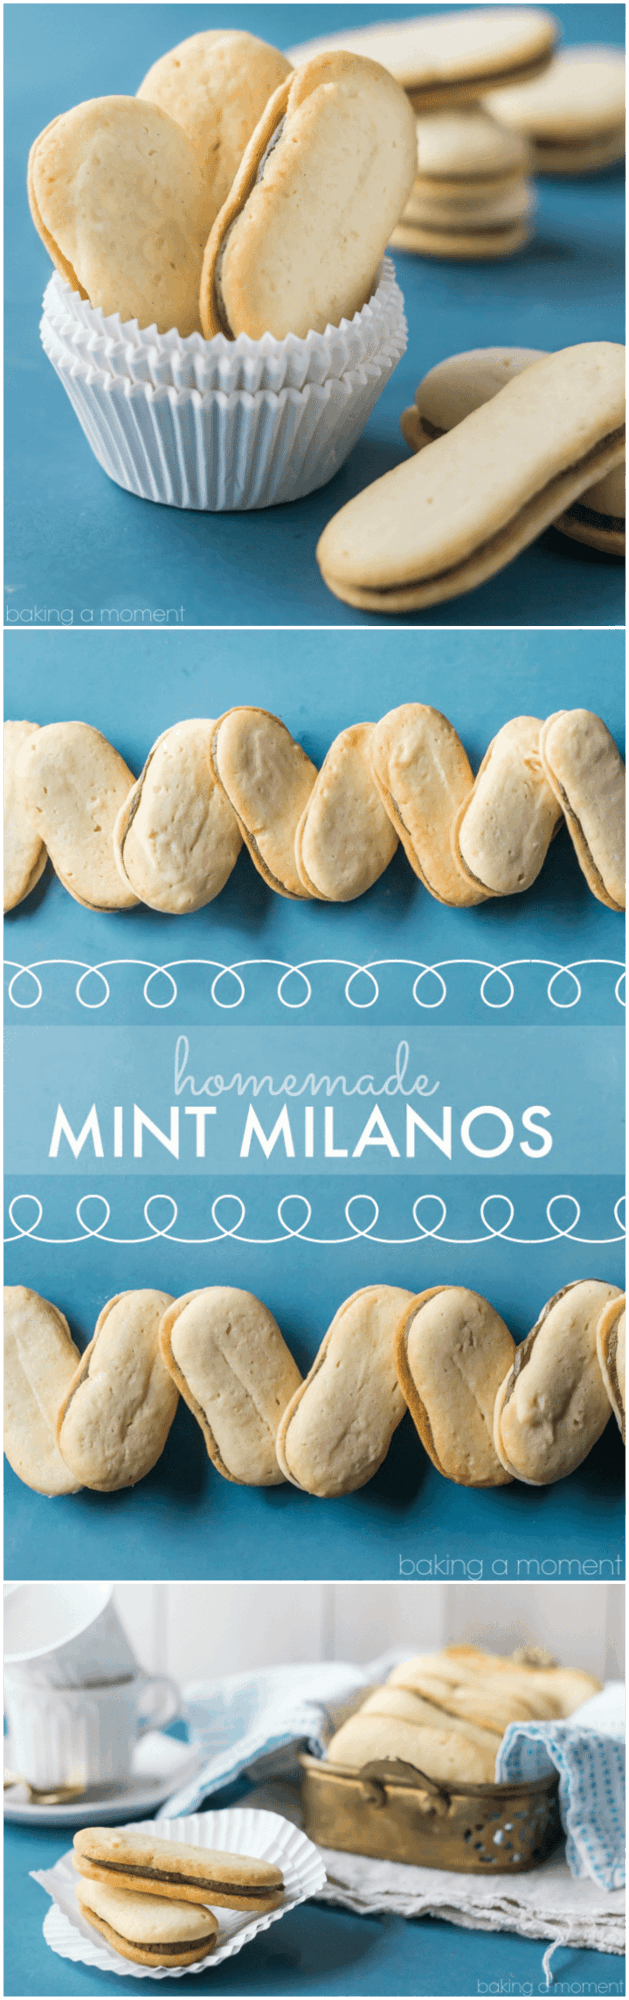 Homemade Mint Milanos- these were just like the store-bought kind only WAY BETTER!!!